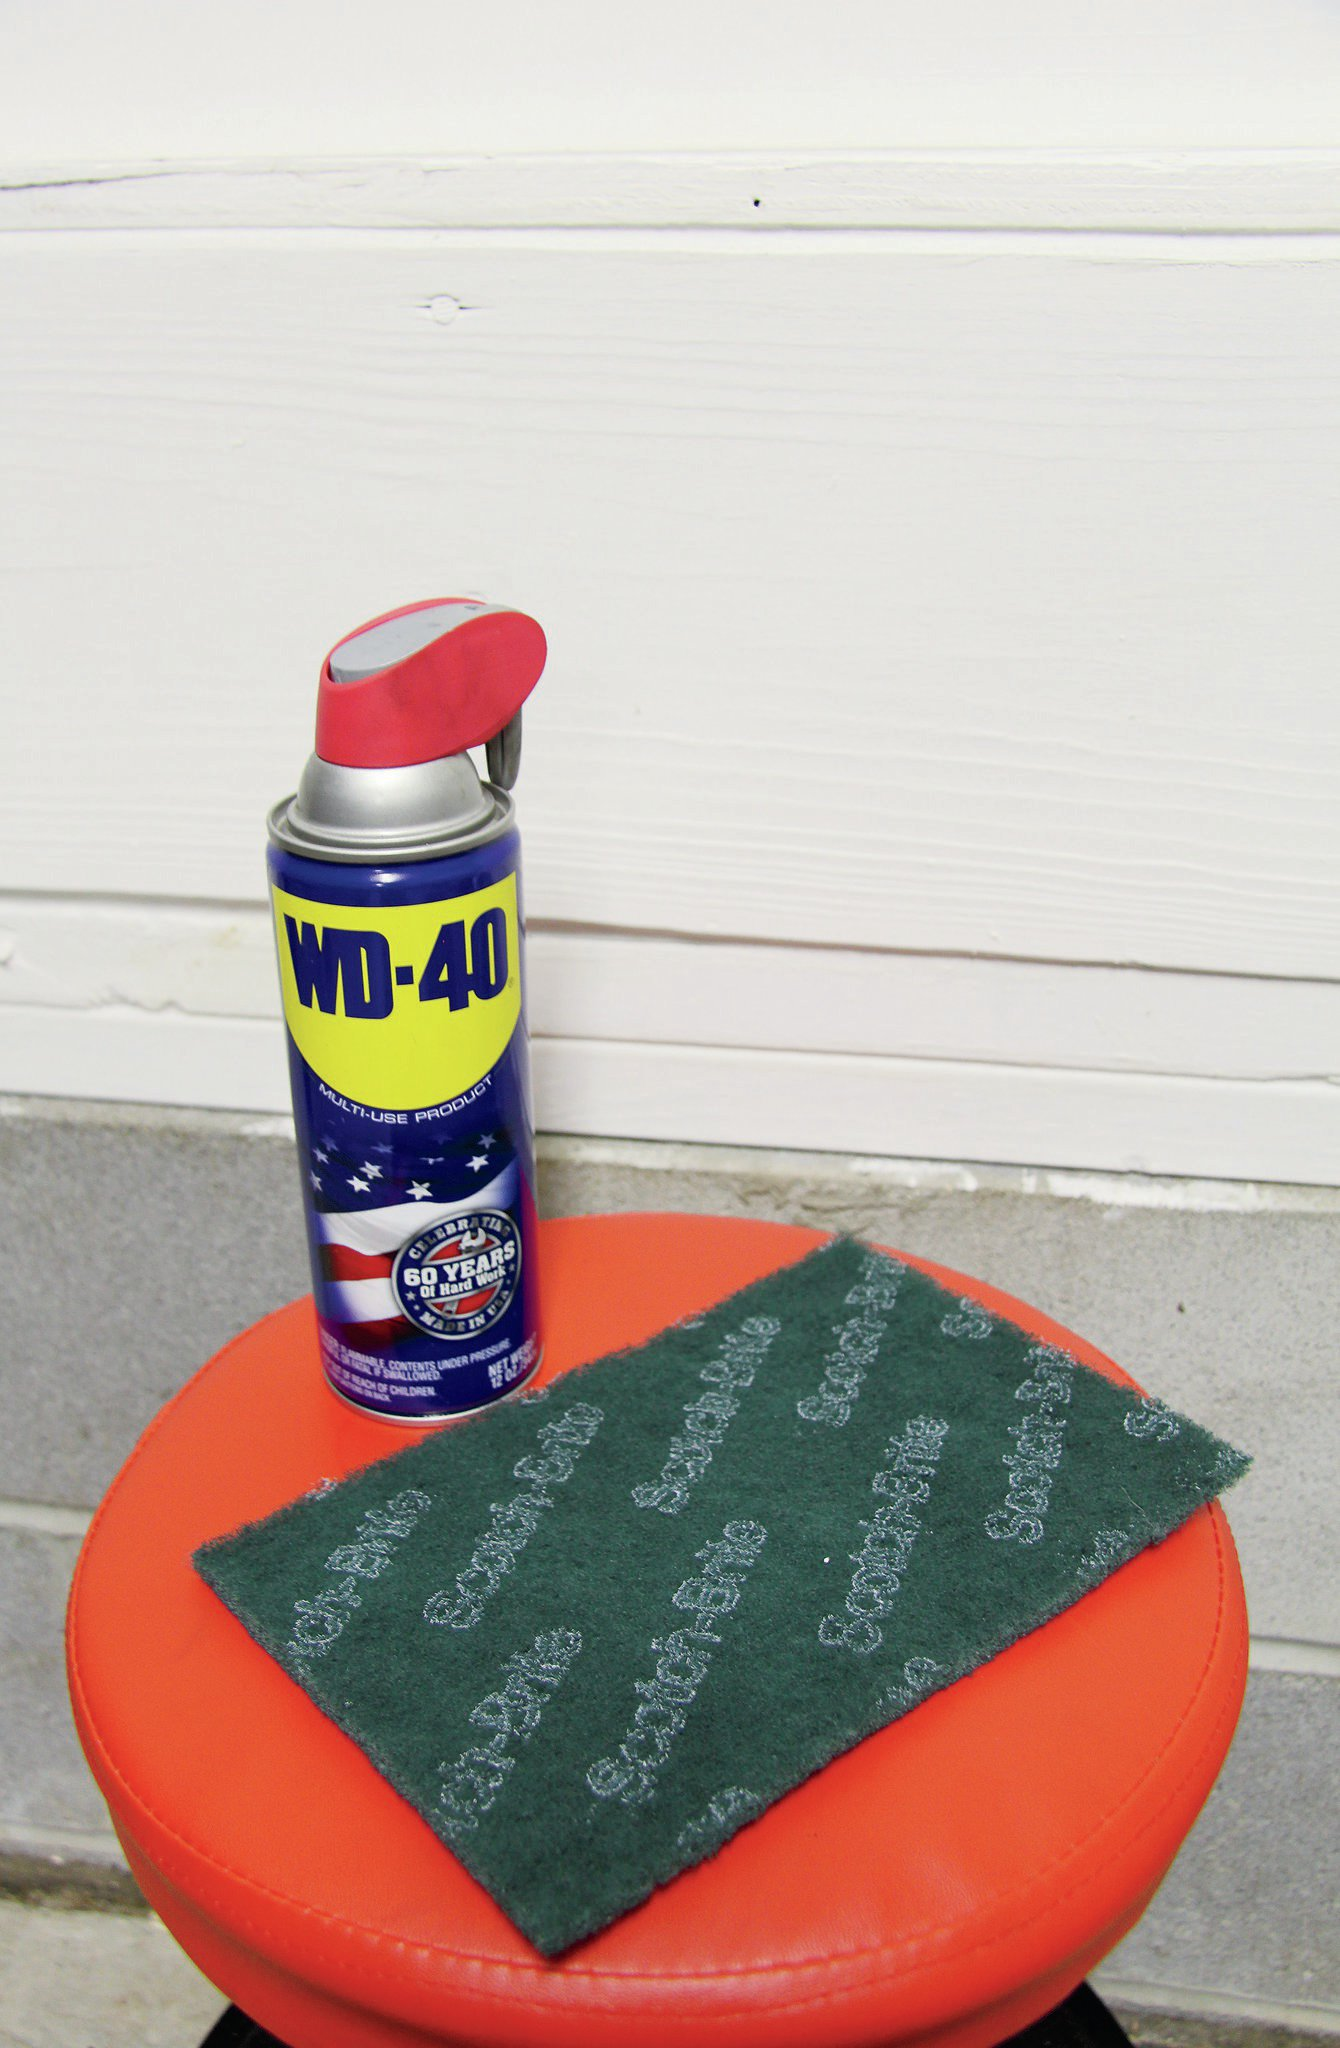 WD-40 is magic in a bottle. It can clean metal extremely well, remove and prevent rust, and even bring ancient parts back to life. One routine task we use it for is keeping our costly aluminum-bodied shocks in good shape. A few passes with a Scotch-Brite pad, along with a helping of WD-40, can go a long way in ridding rust and reviving the part. Fun fact, the WD stands for water displacement, while the 40 represents the 40th formula that ended up being the right one!